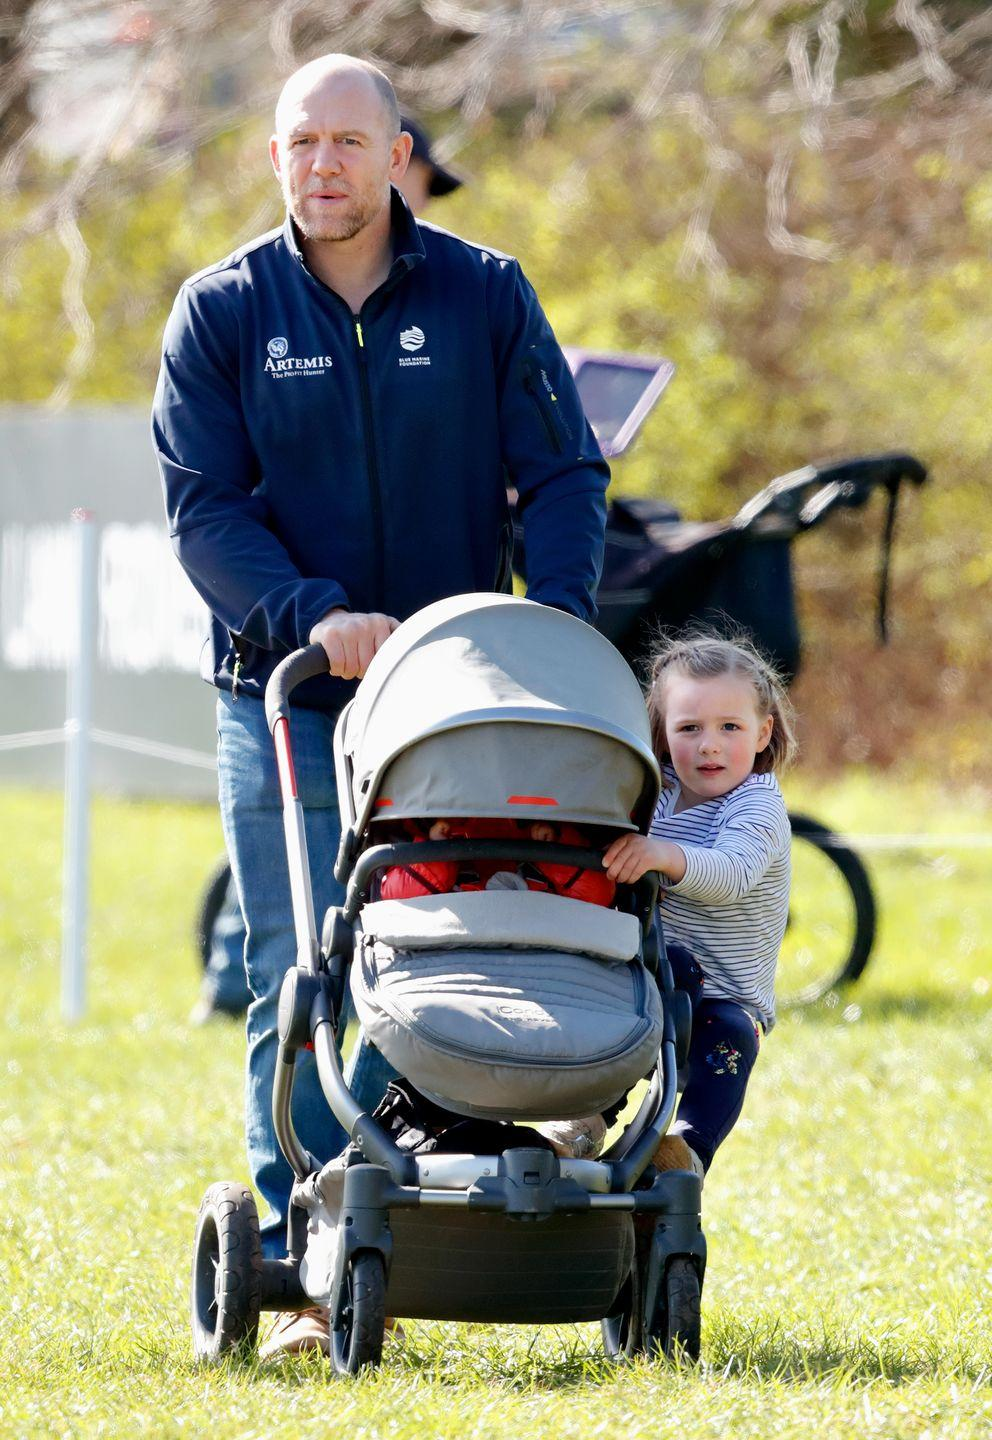 "<p><strong>Branch of the Family Tree:</strong> <a href=""https://www.townandcountrymag.com/society/tradition/a21655660/zara-tindall-daughter-name-meaning-lena-elizabeth-tindall/"" rel=""nofollow noopener"" target=""_blank"" data-ylk=""slk:Daughter of Zara Tindall;"" class=""link rapid-noclick-resp"">Daughter of Zara Tindall;</a> great-granddaughter of Queen Elizabeth II</p>"